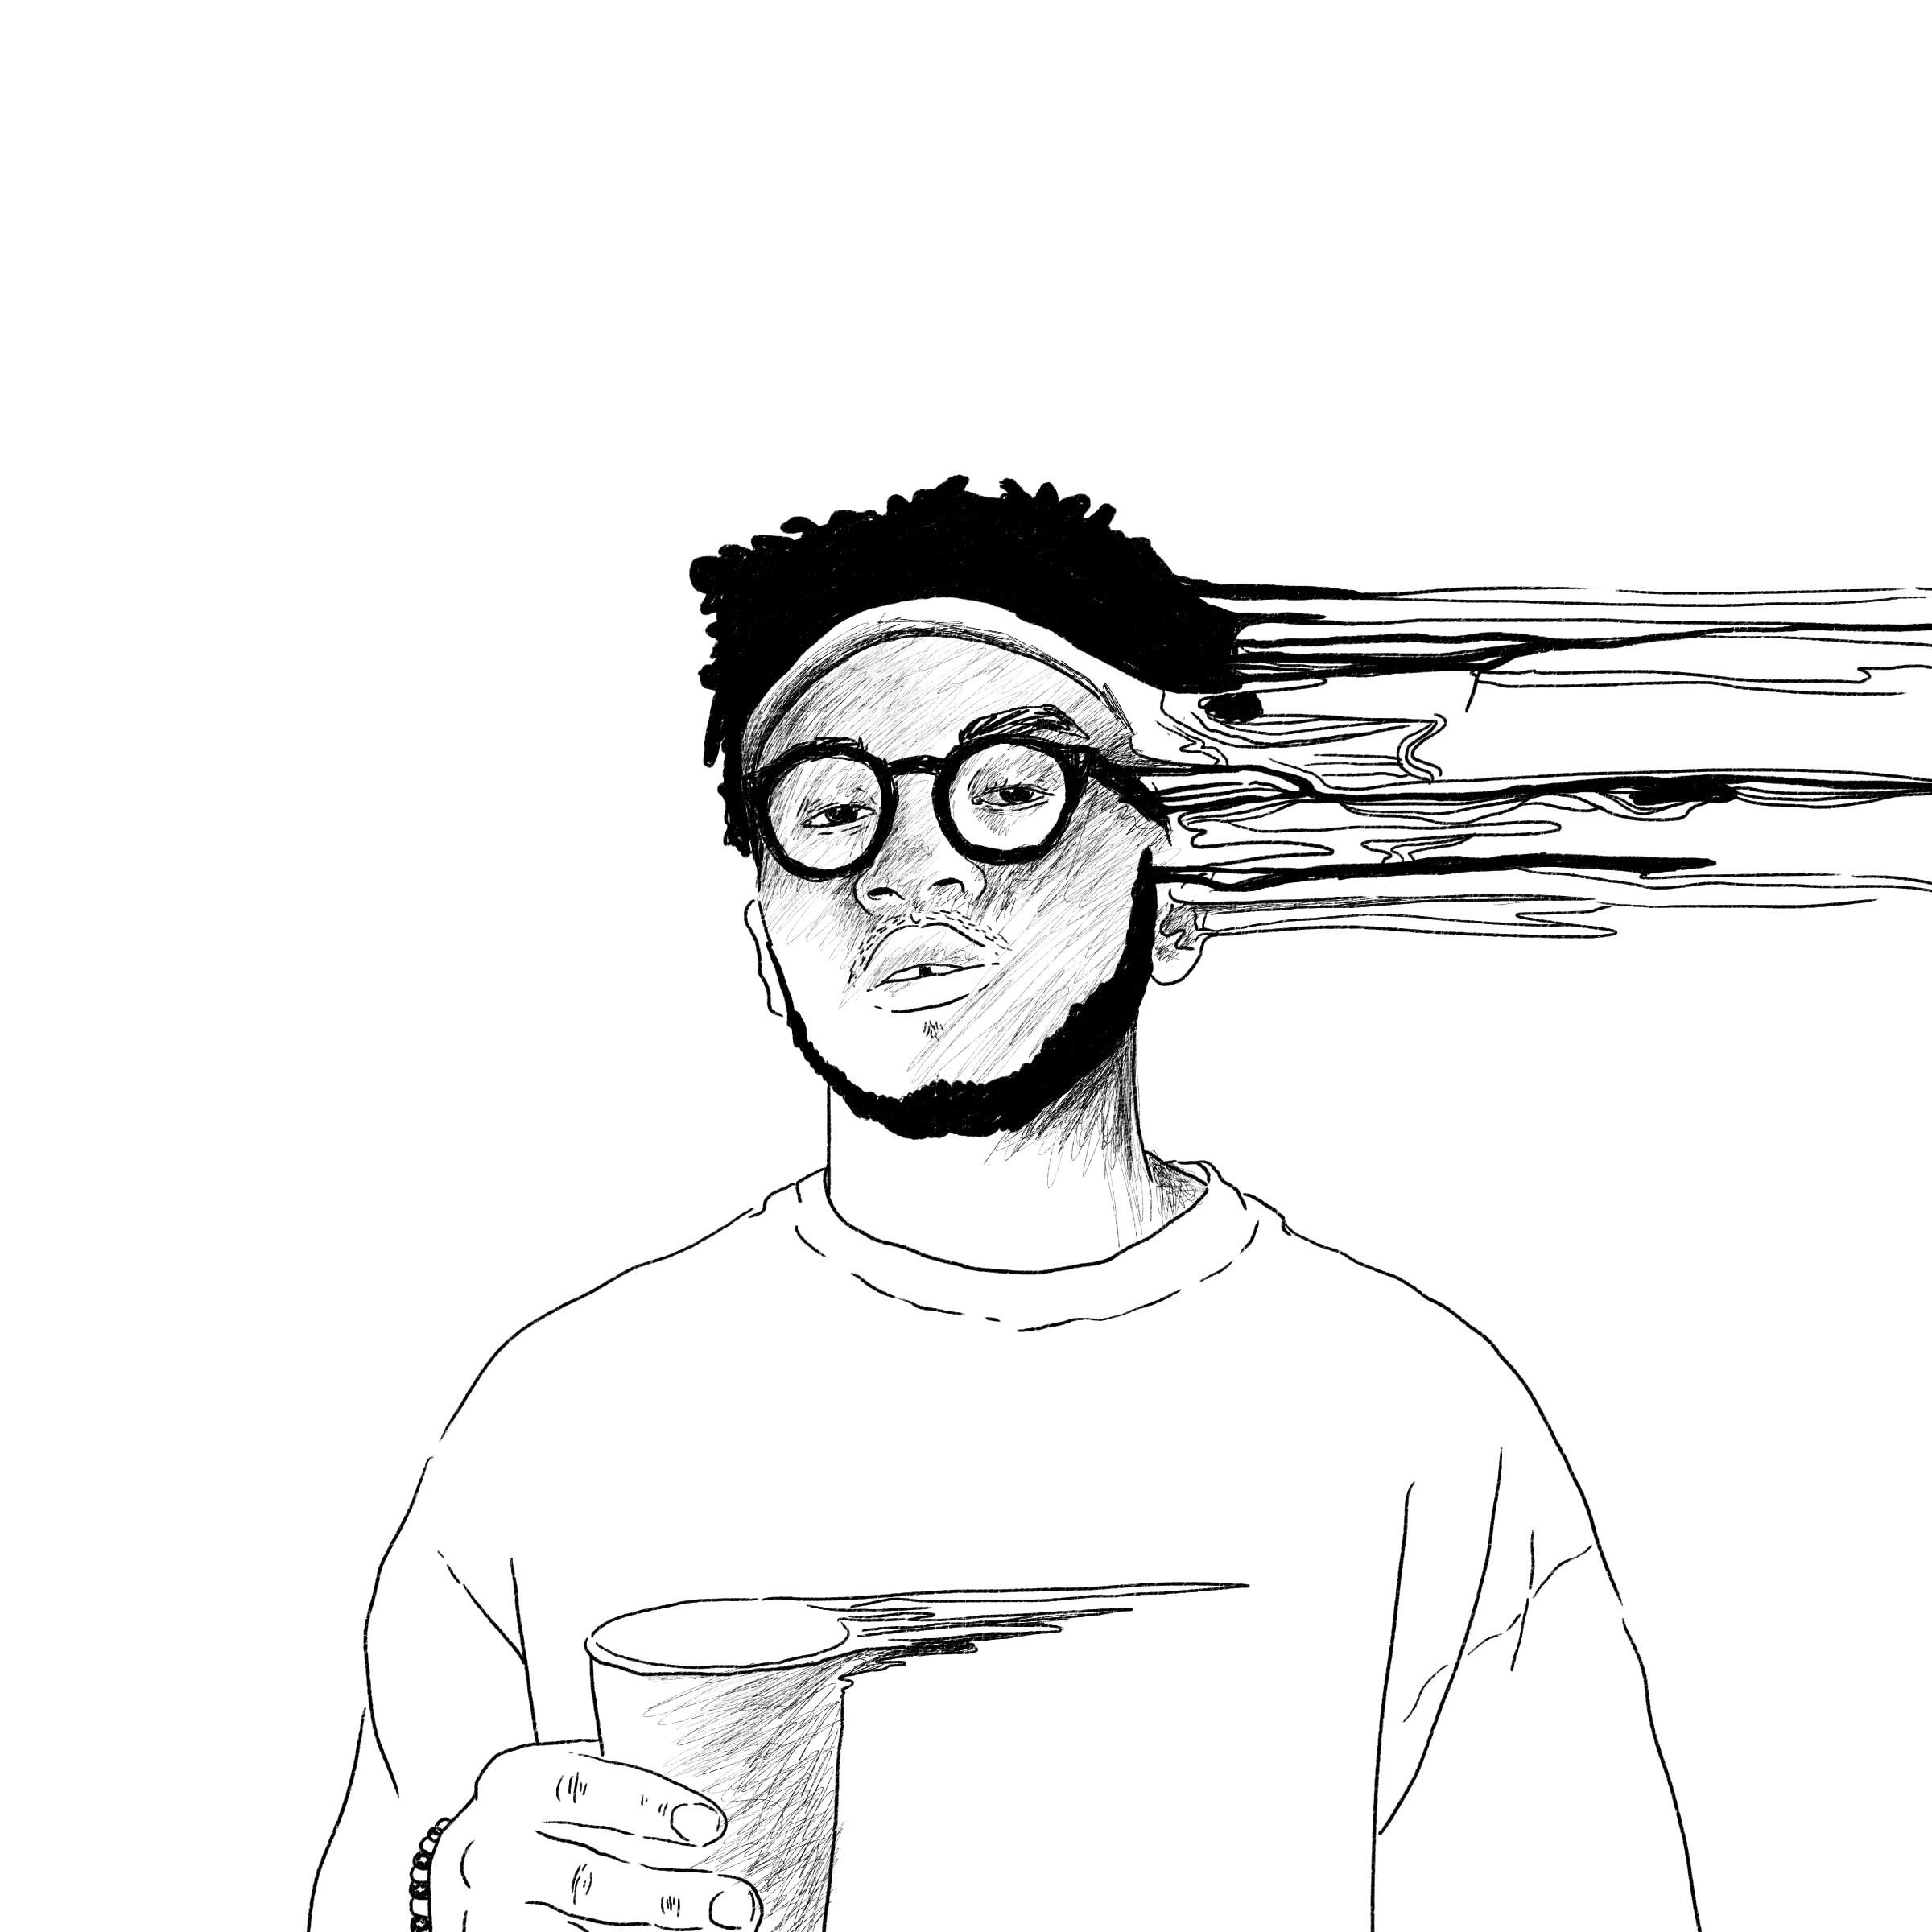 kevin abstract.jpg